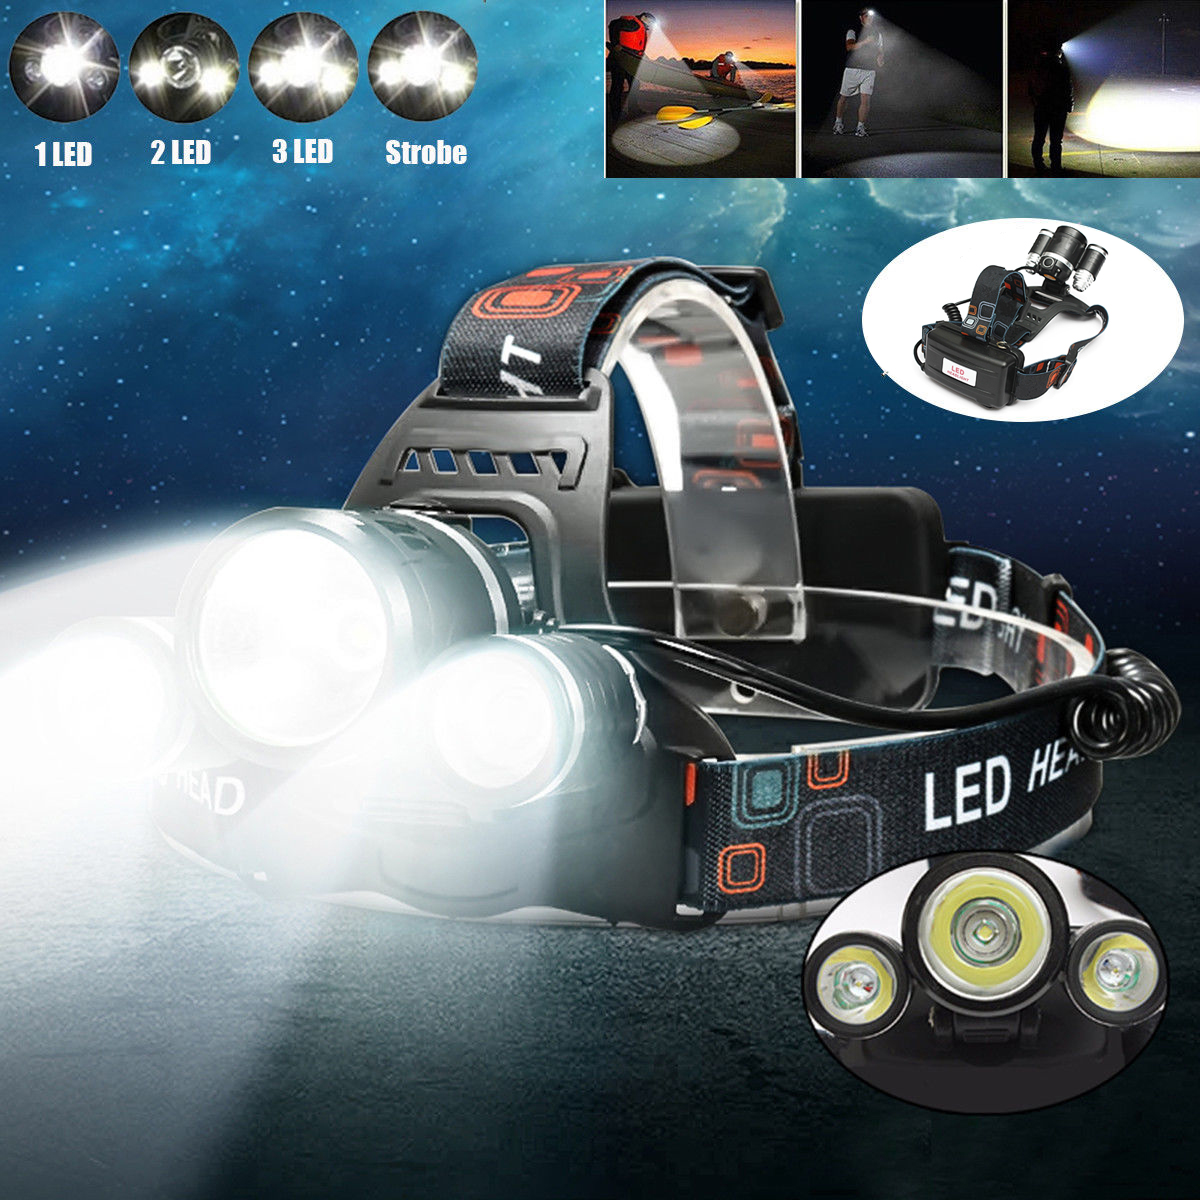 5000 Lumens 3 x T6 LED Rechargeable Headlamp Headlight Flashlight Torch 3Modes For Camping Fishing Outdoor